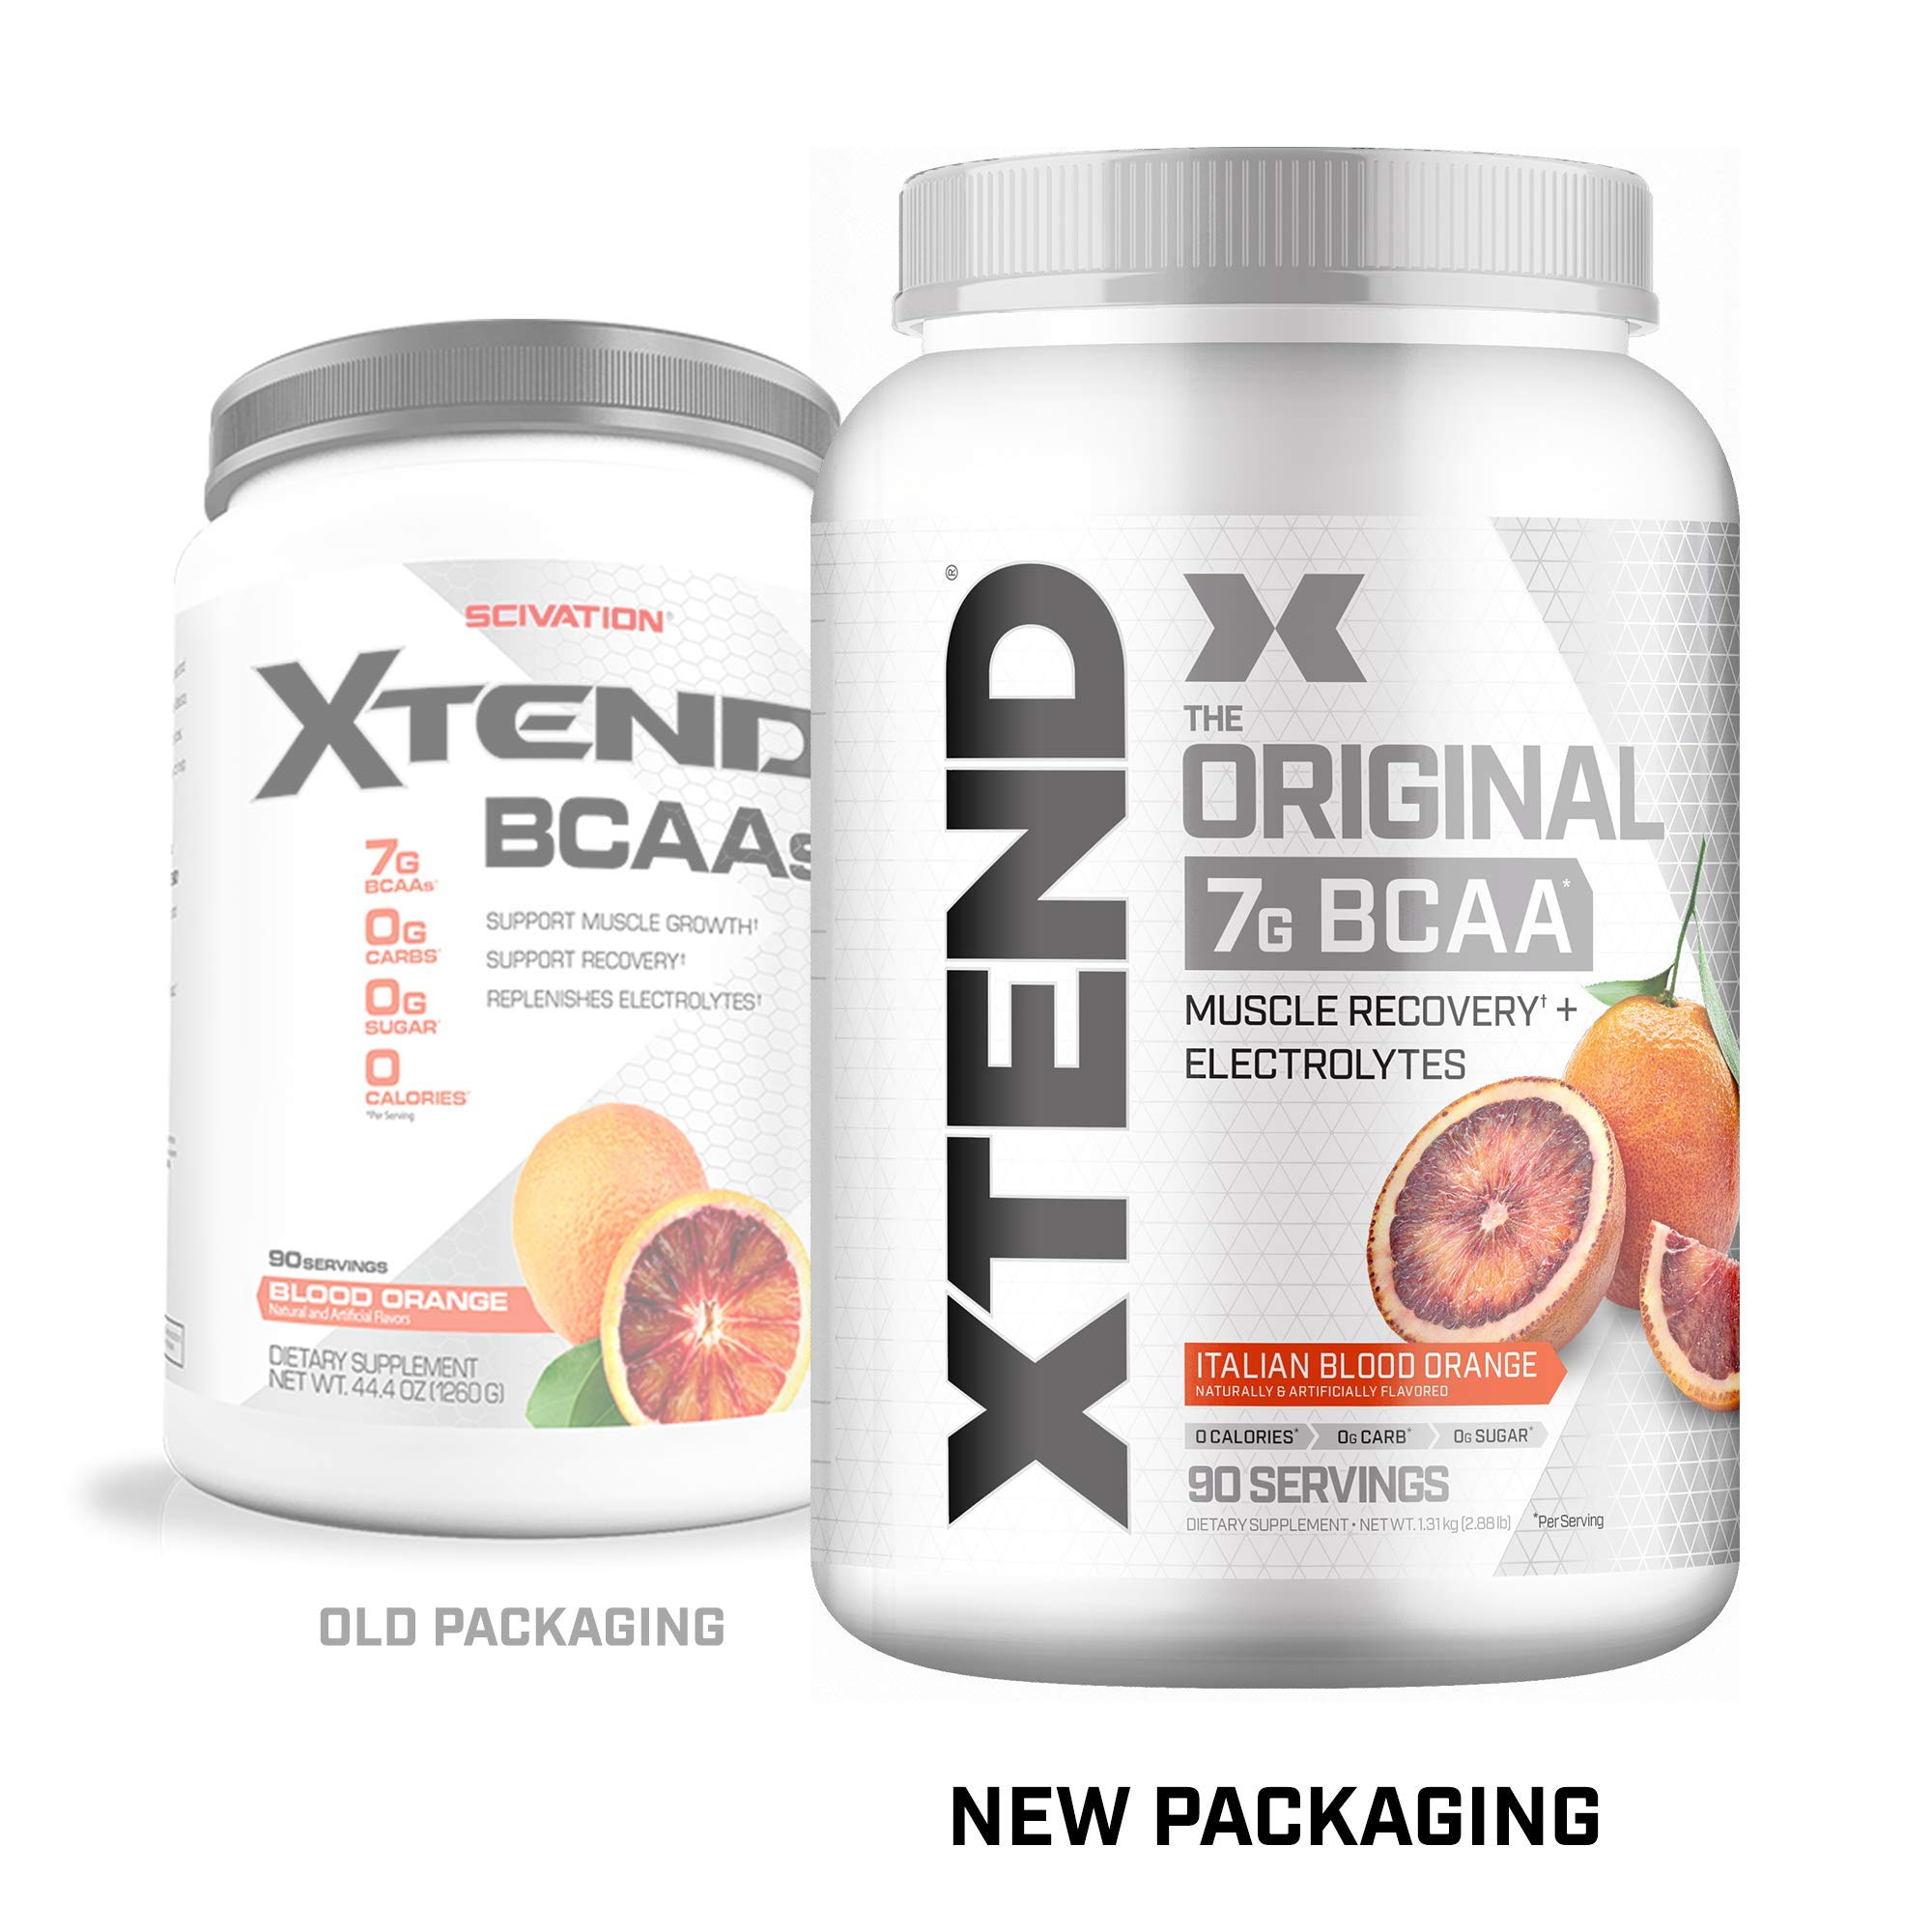 Scivation Xtend BCAA Powder, Branched Chain Amino Acids, BCAAs, Blood Orange, 90 Servings by Scivation (Image #2)